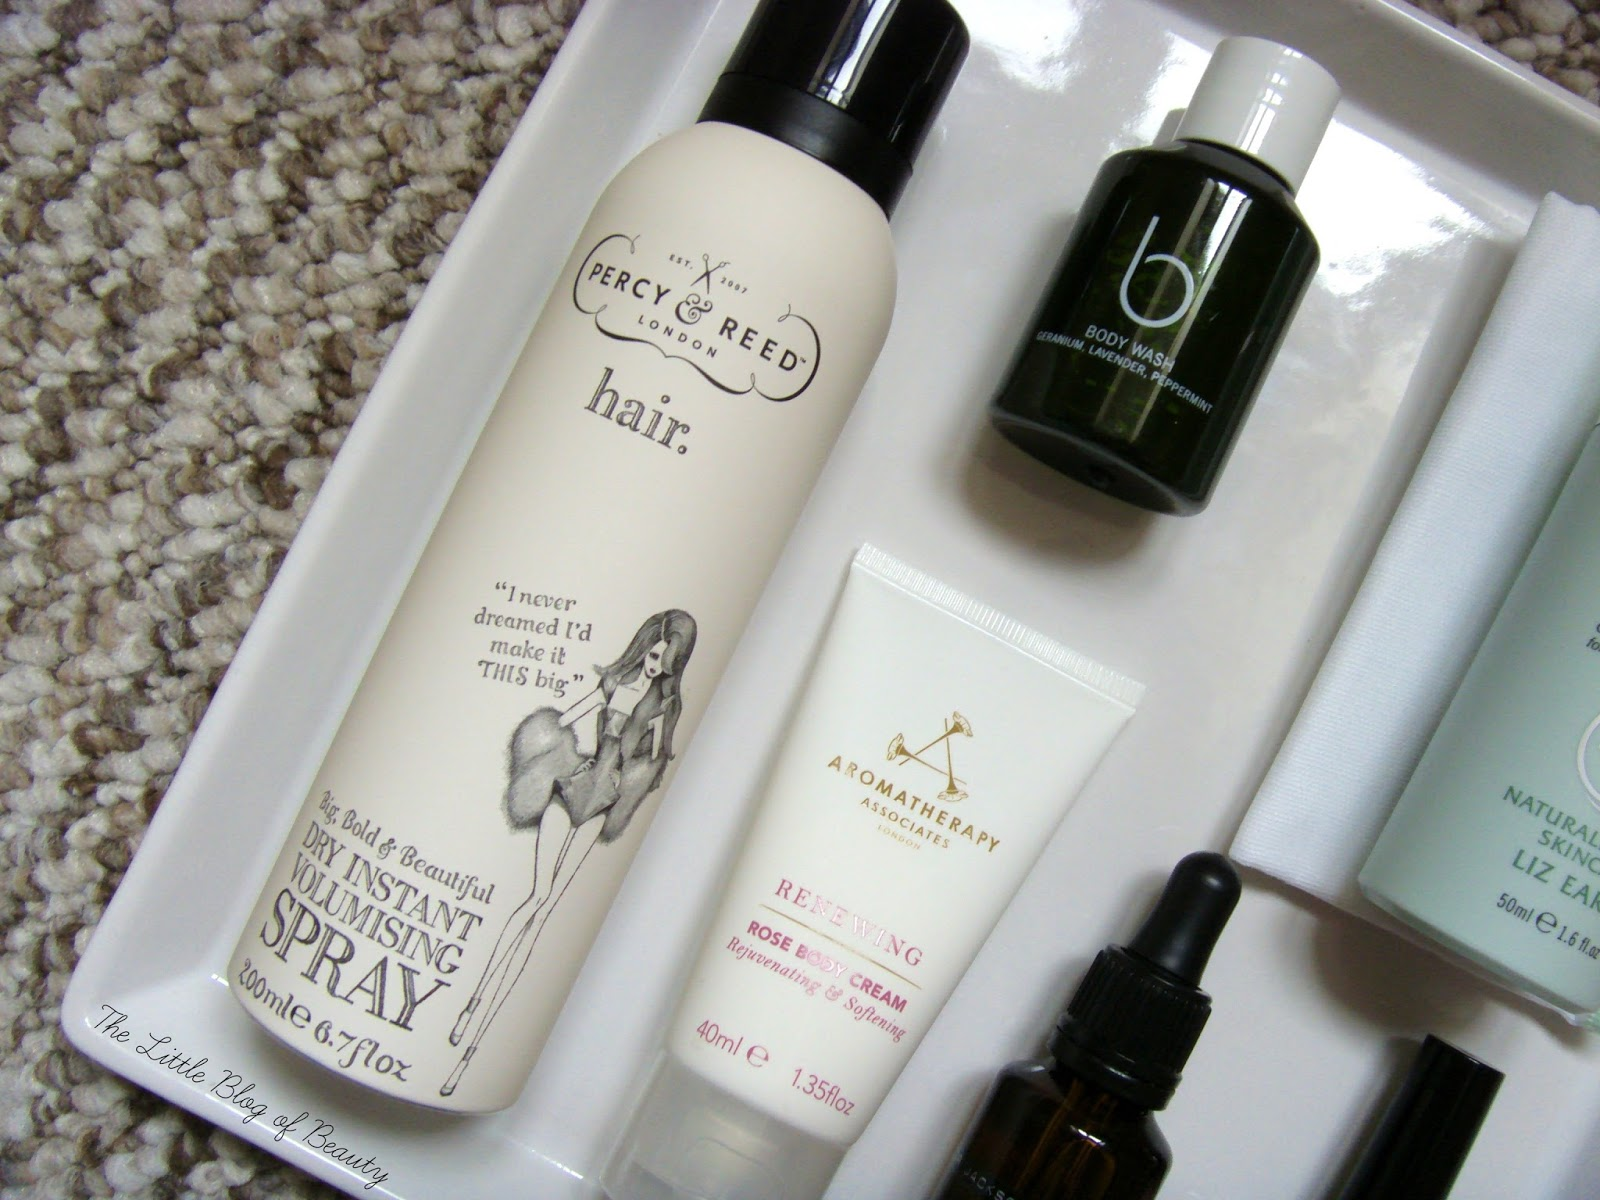 Birchbox limited edition Tatler box